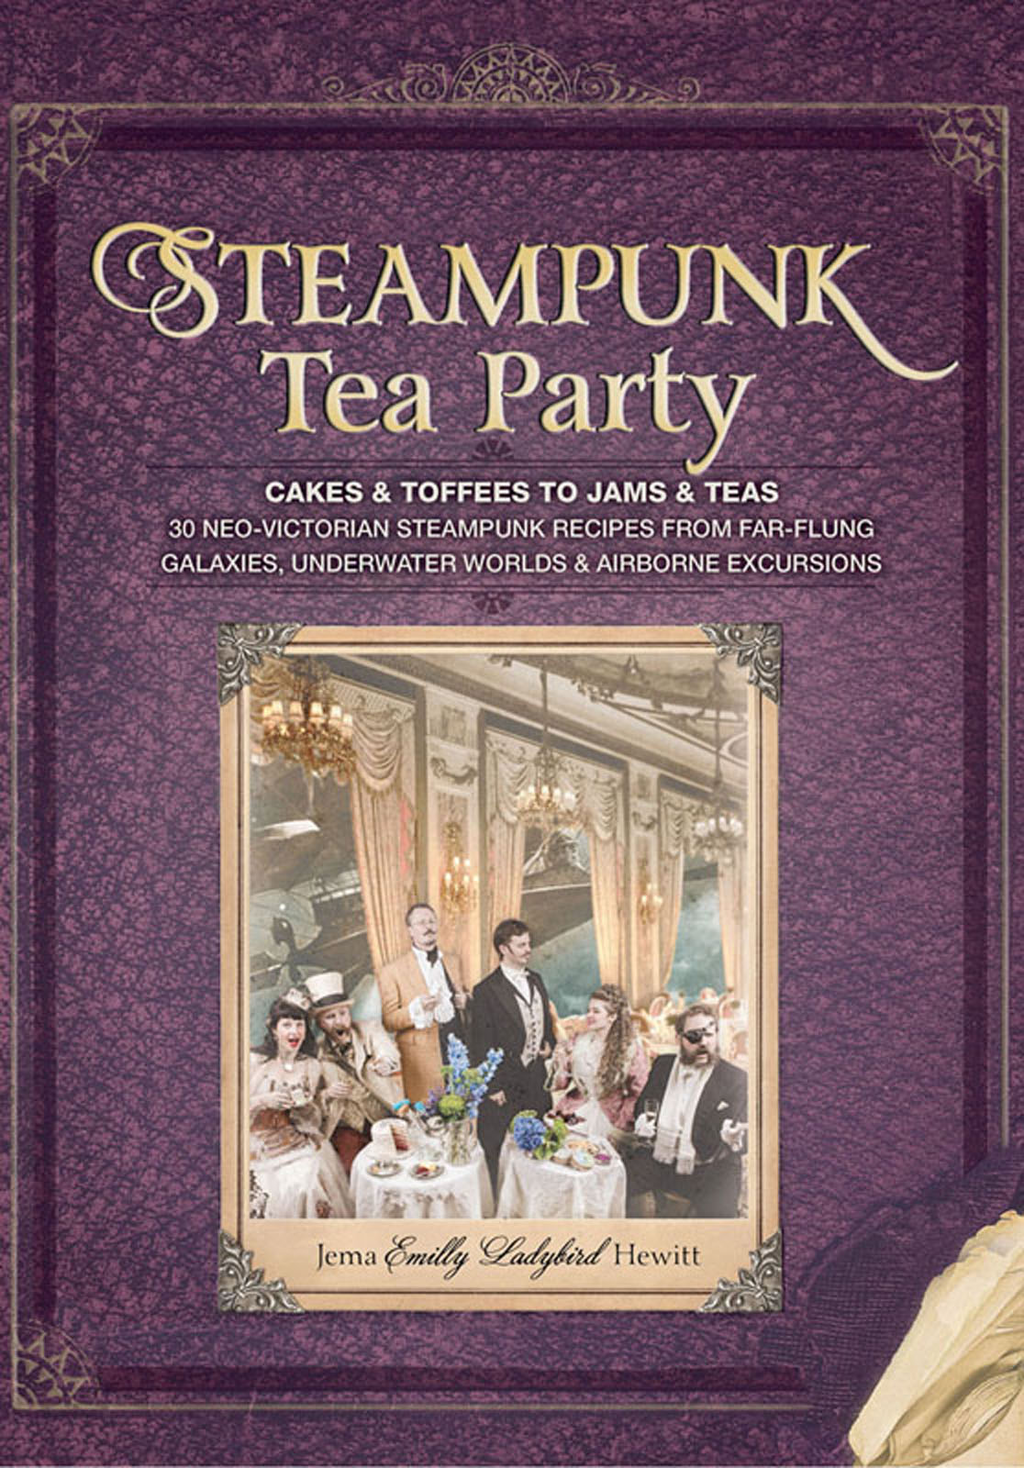 Steampunk Tea Party Cakes & Toffees to Jams & Teas - 30 Neo-Victorian Steampunk Recipes from Far-Flung Galaxies, Underwater Worlds & Airborne Excursio